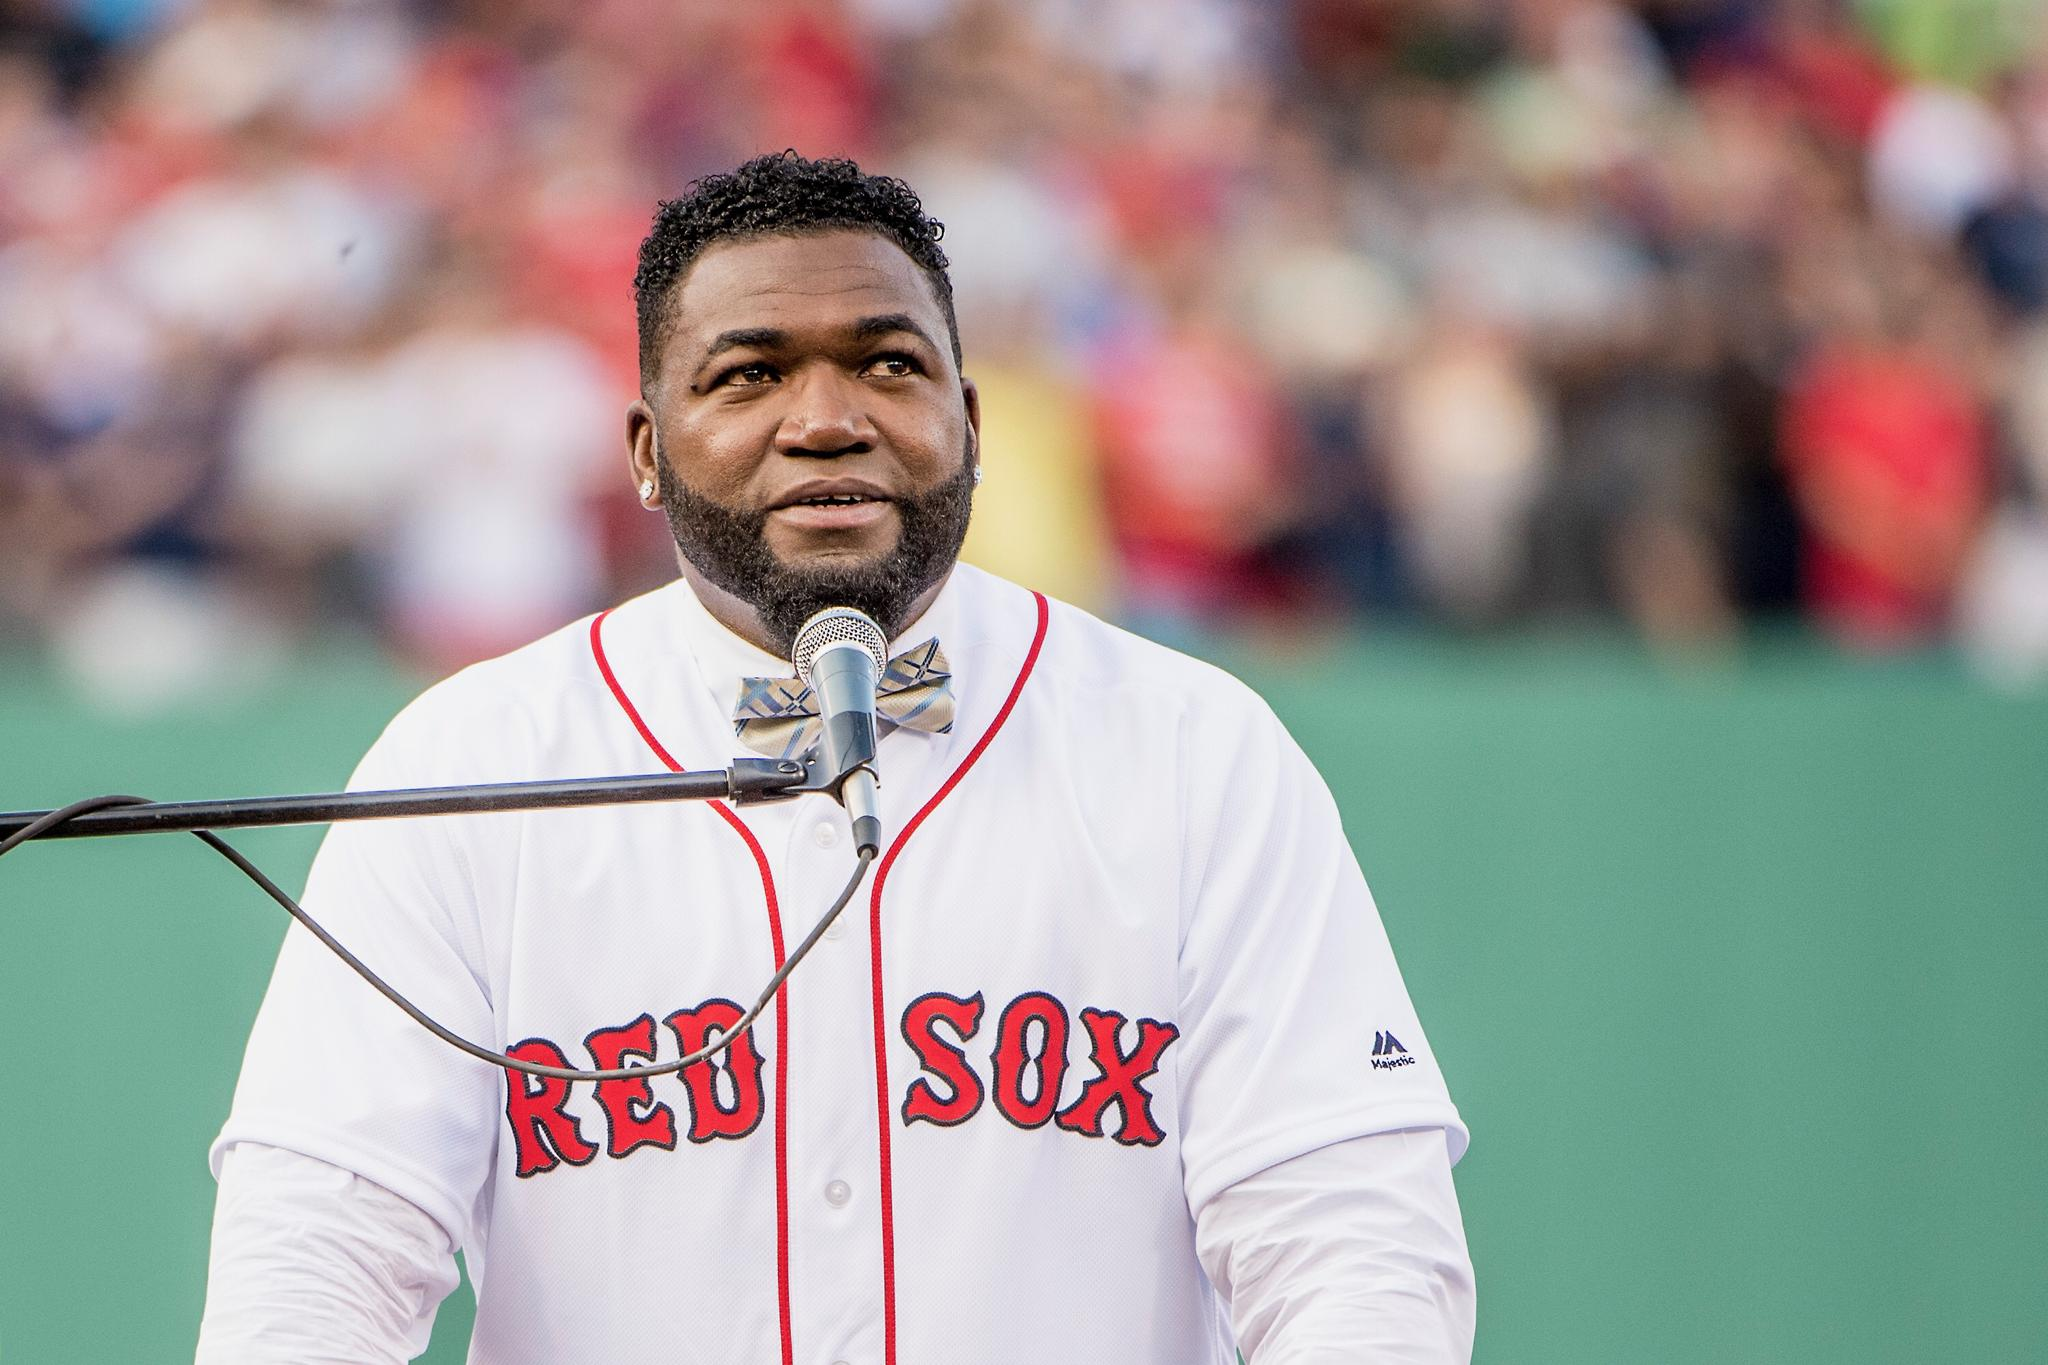 .@davidortiz makes long-term commitment to #RedSox and Fenway Sports Management: https://t.co/Dagjt7wMNF https://t.co/NExAYjYHja